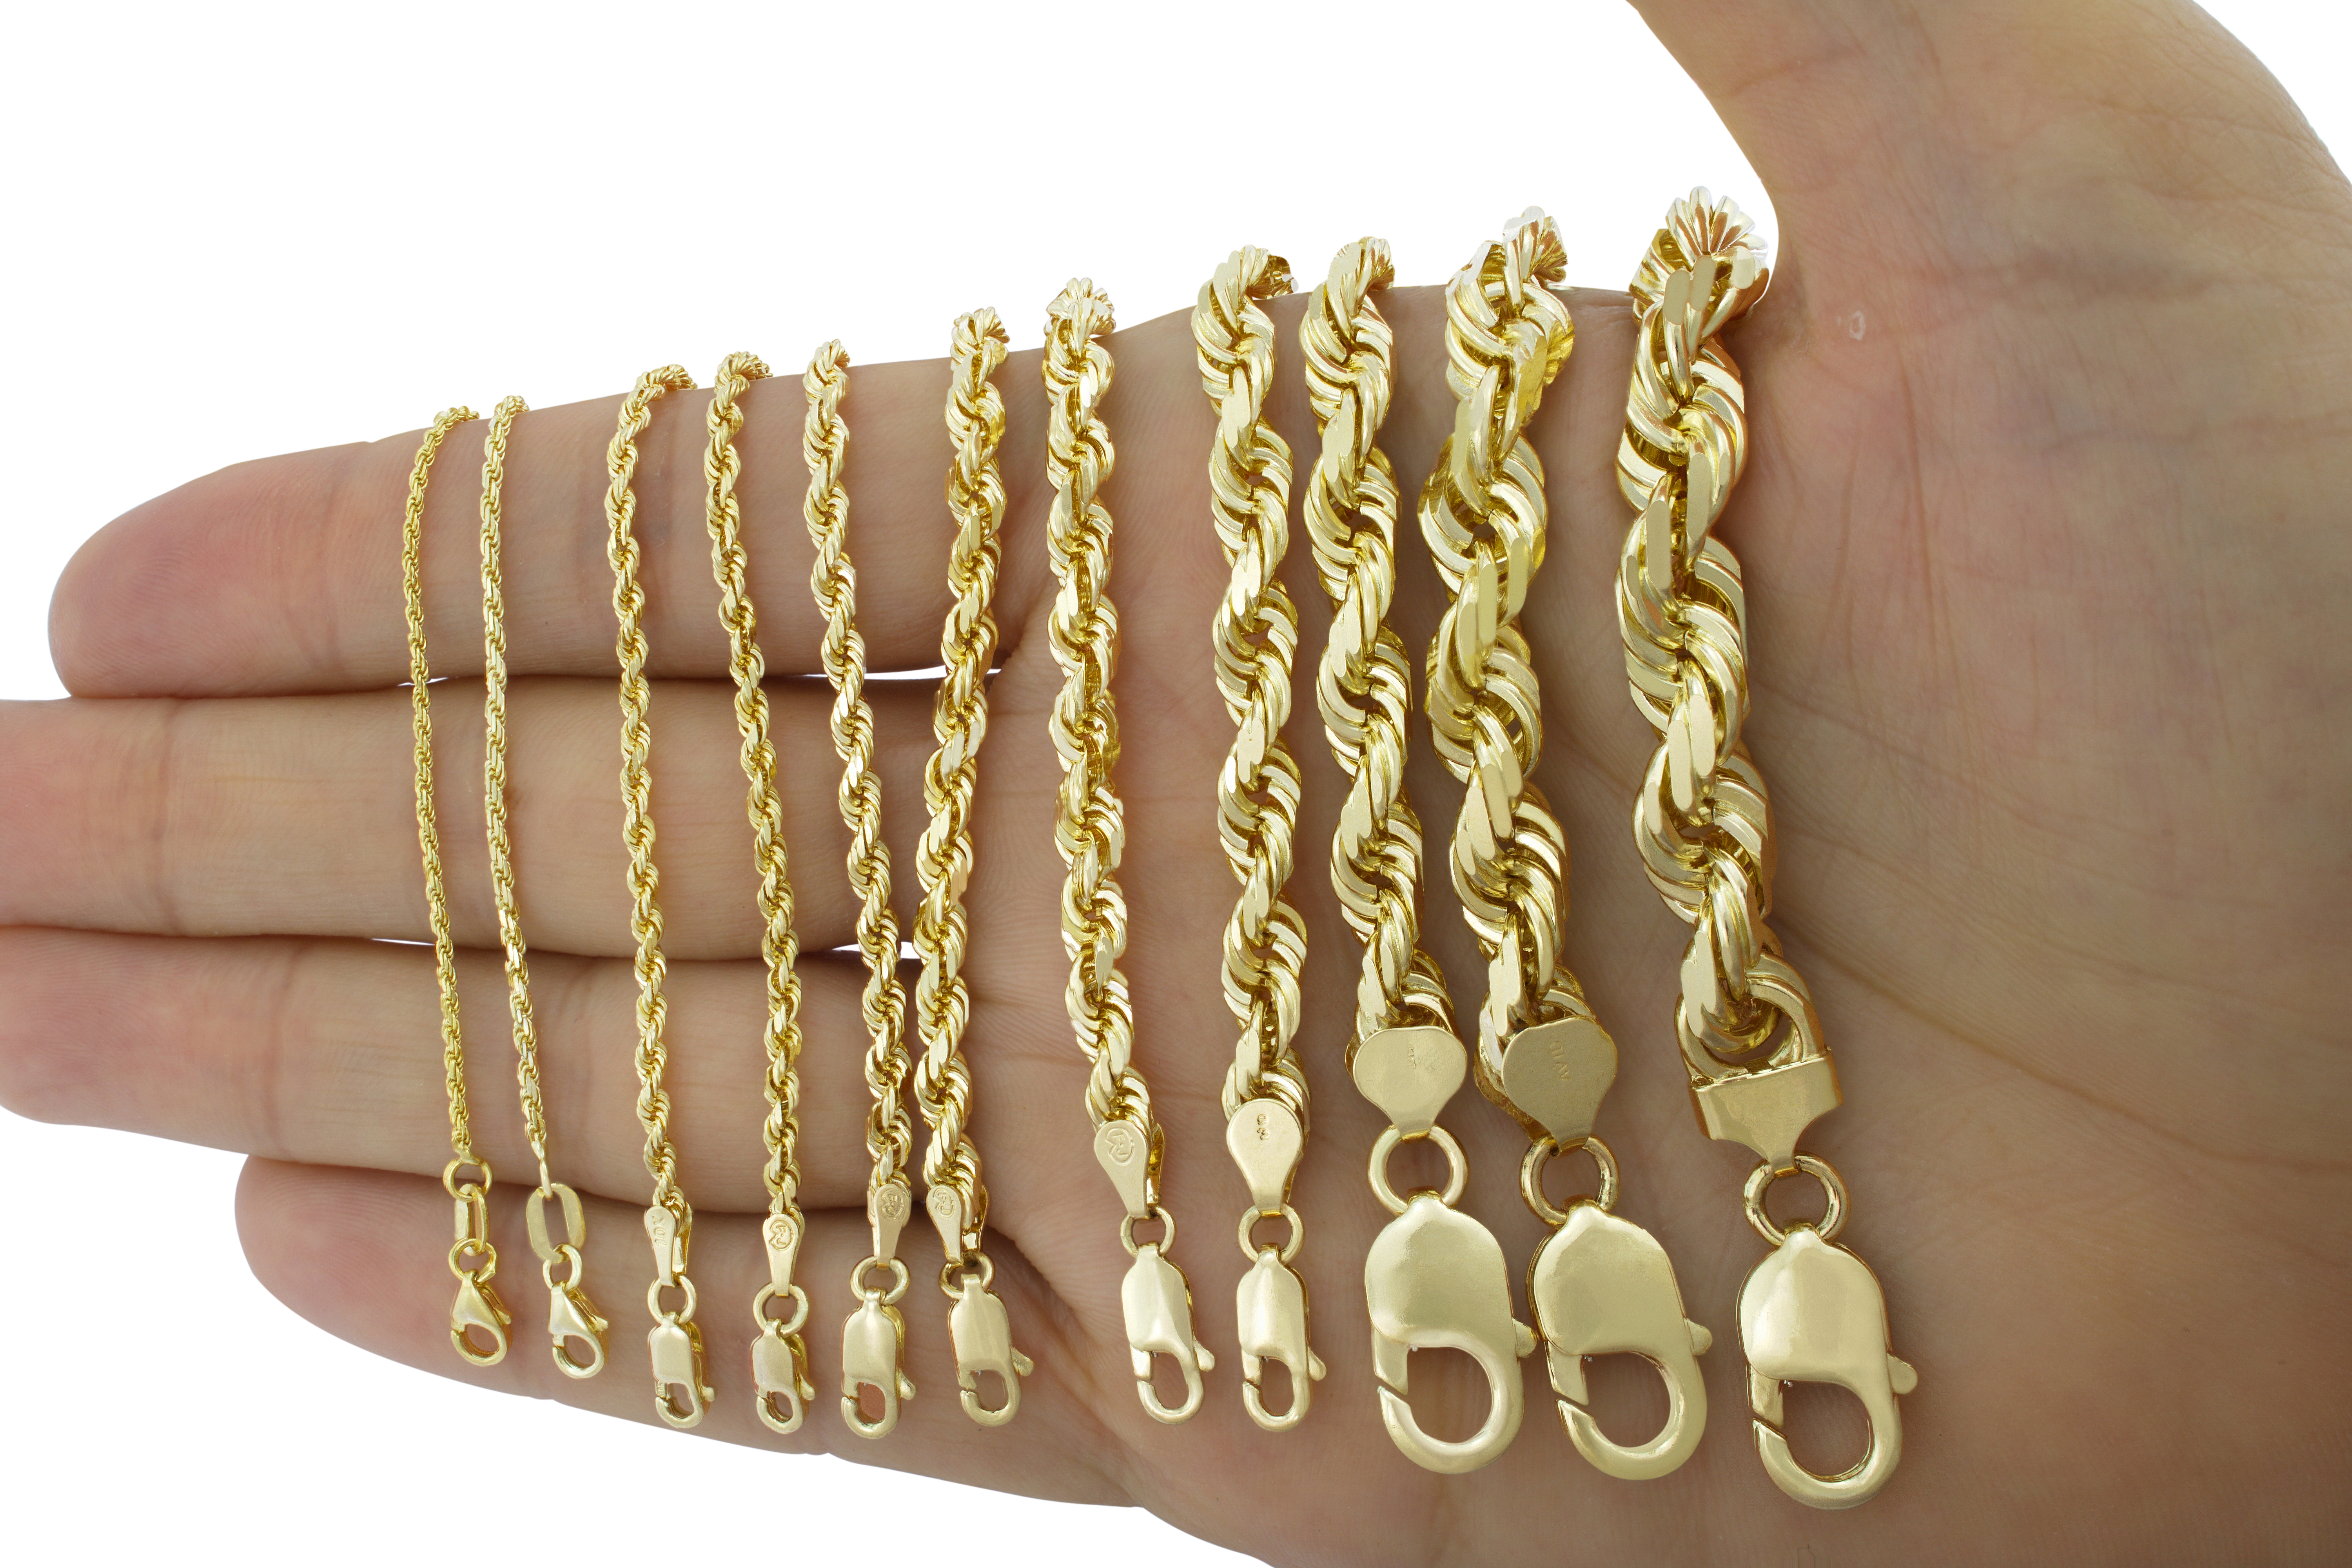 10K-Yellow-Gold-1mm-10mm-Diamond-Cut-Solid-Rope-Chain-Pendant-Necklace-16-034-32-034 thumbnail 3